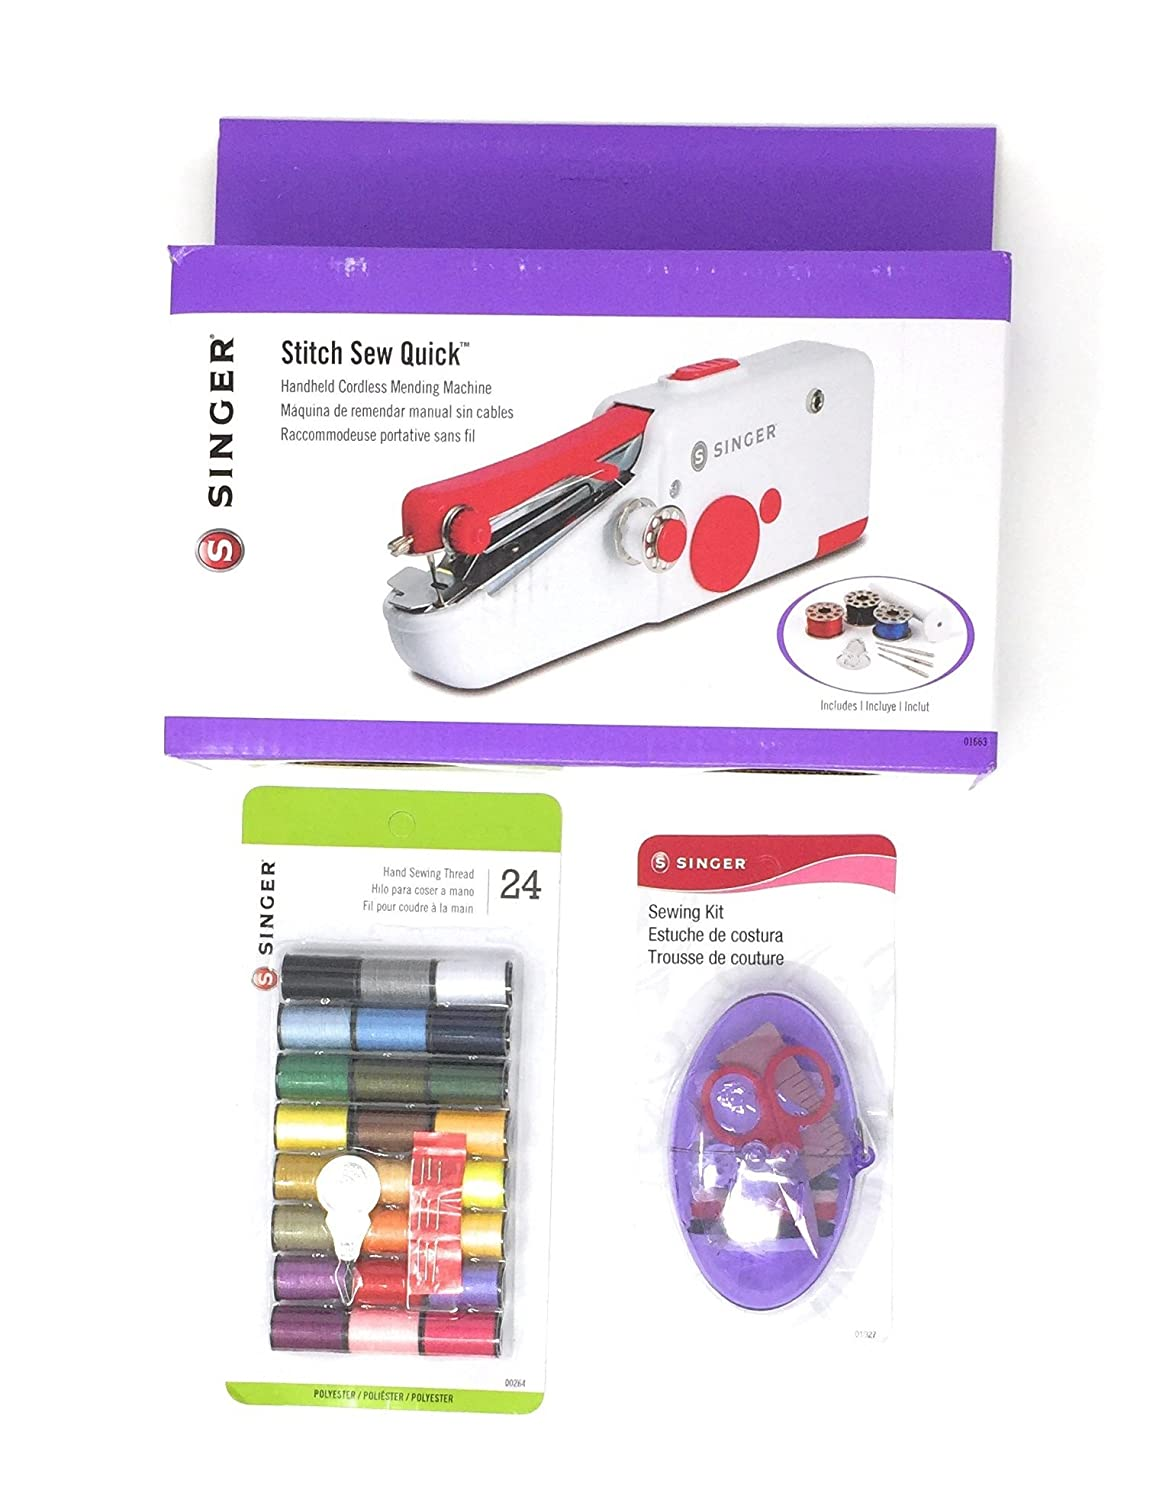 Amazon.com: Singer Hand Sewing Machine Bundle - 3 Items: Handy Stitch Sew Quick, Assorted Polyester Thread, Egg-Centric Sewing Kit